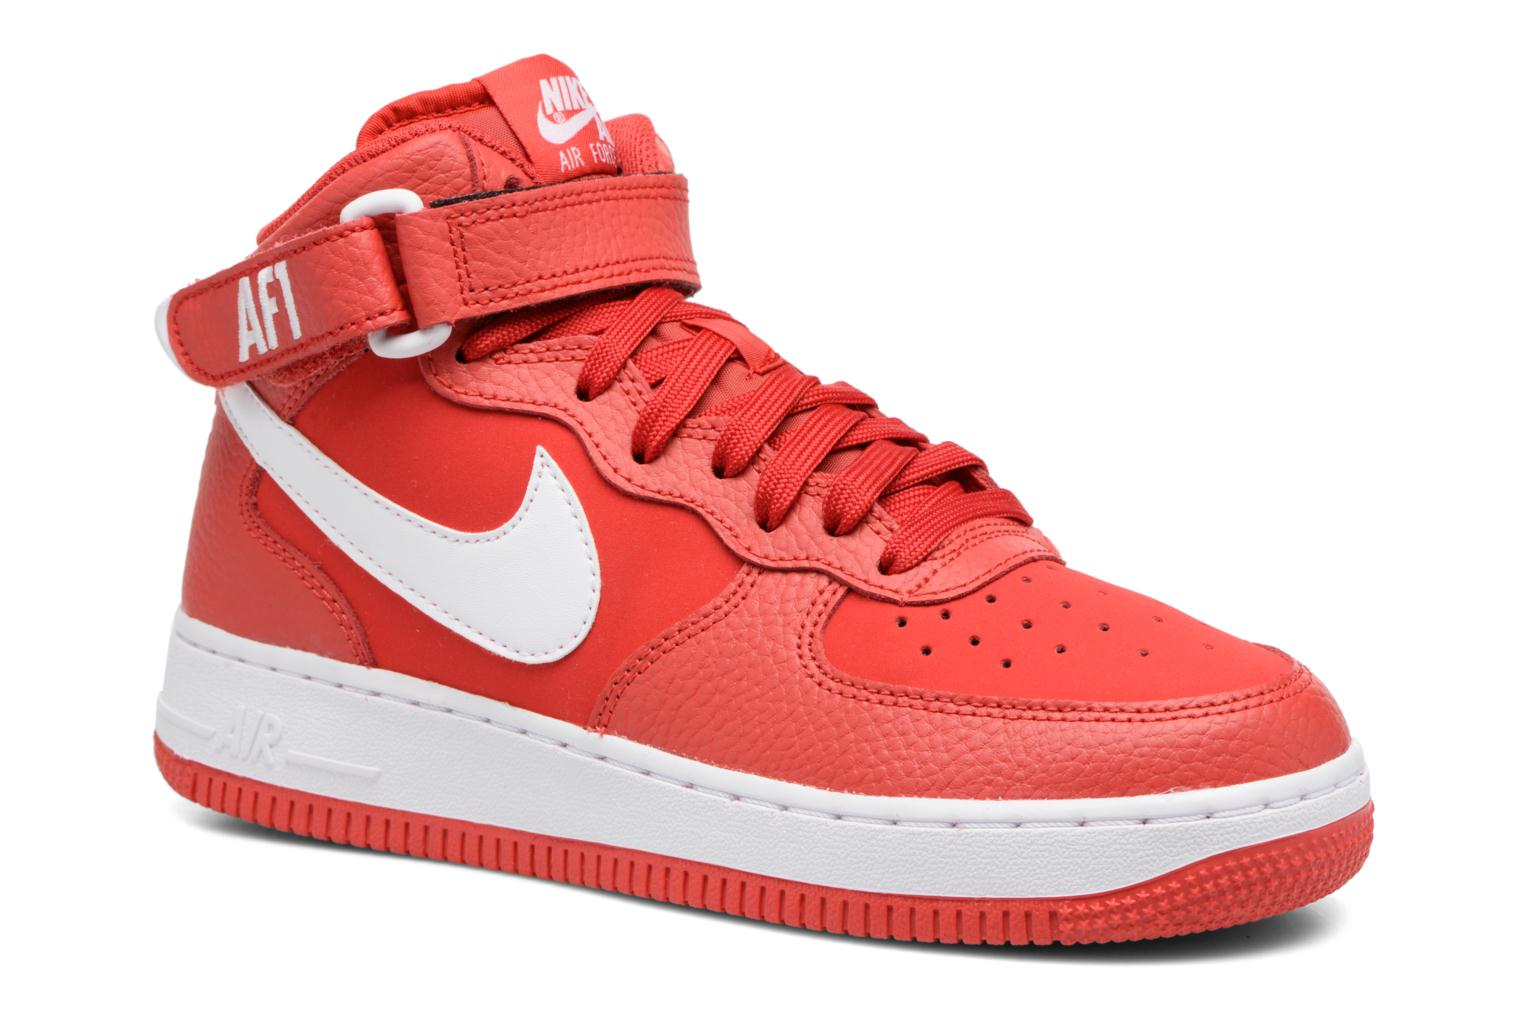 Force rosso 310270 1 Nike Chez Air Sneakers Sarenza gs Mid qT6BH65